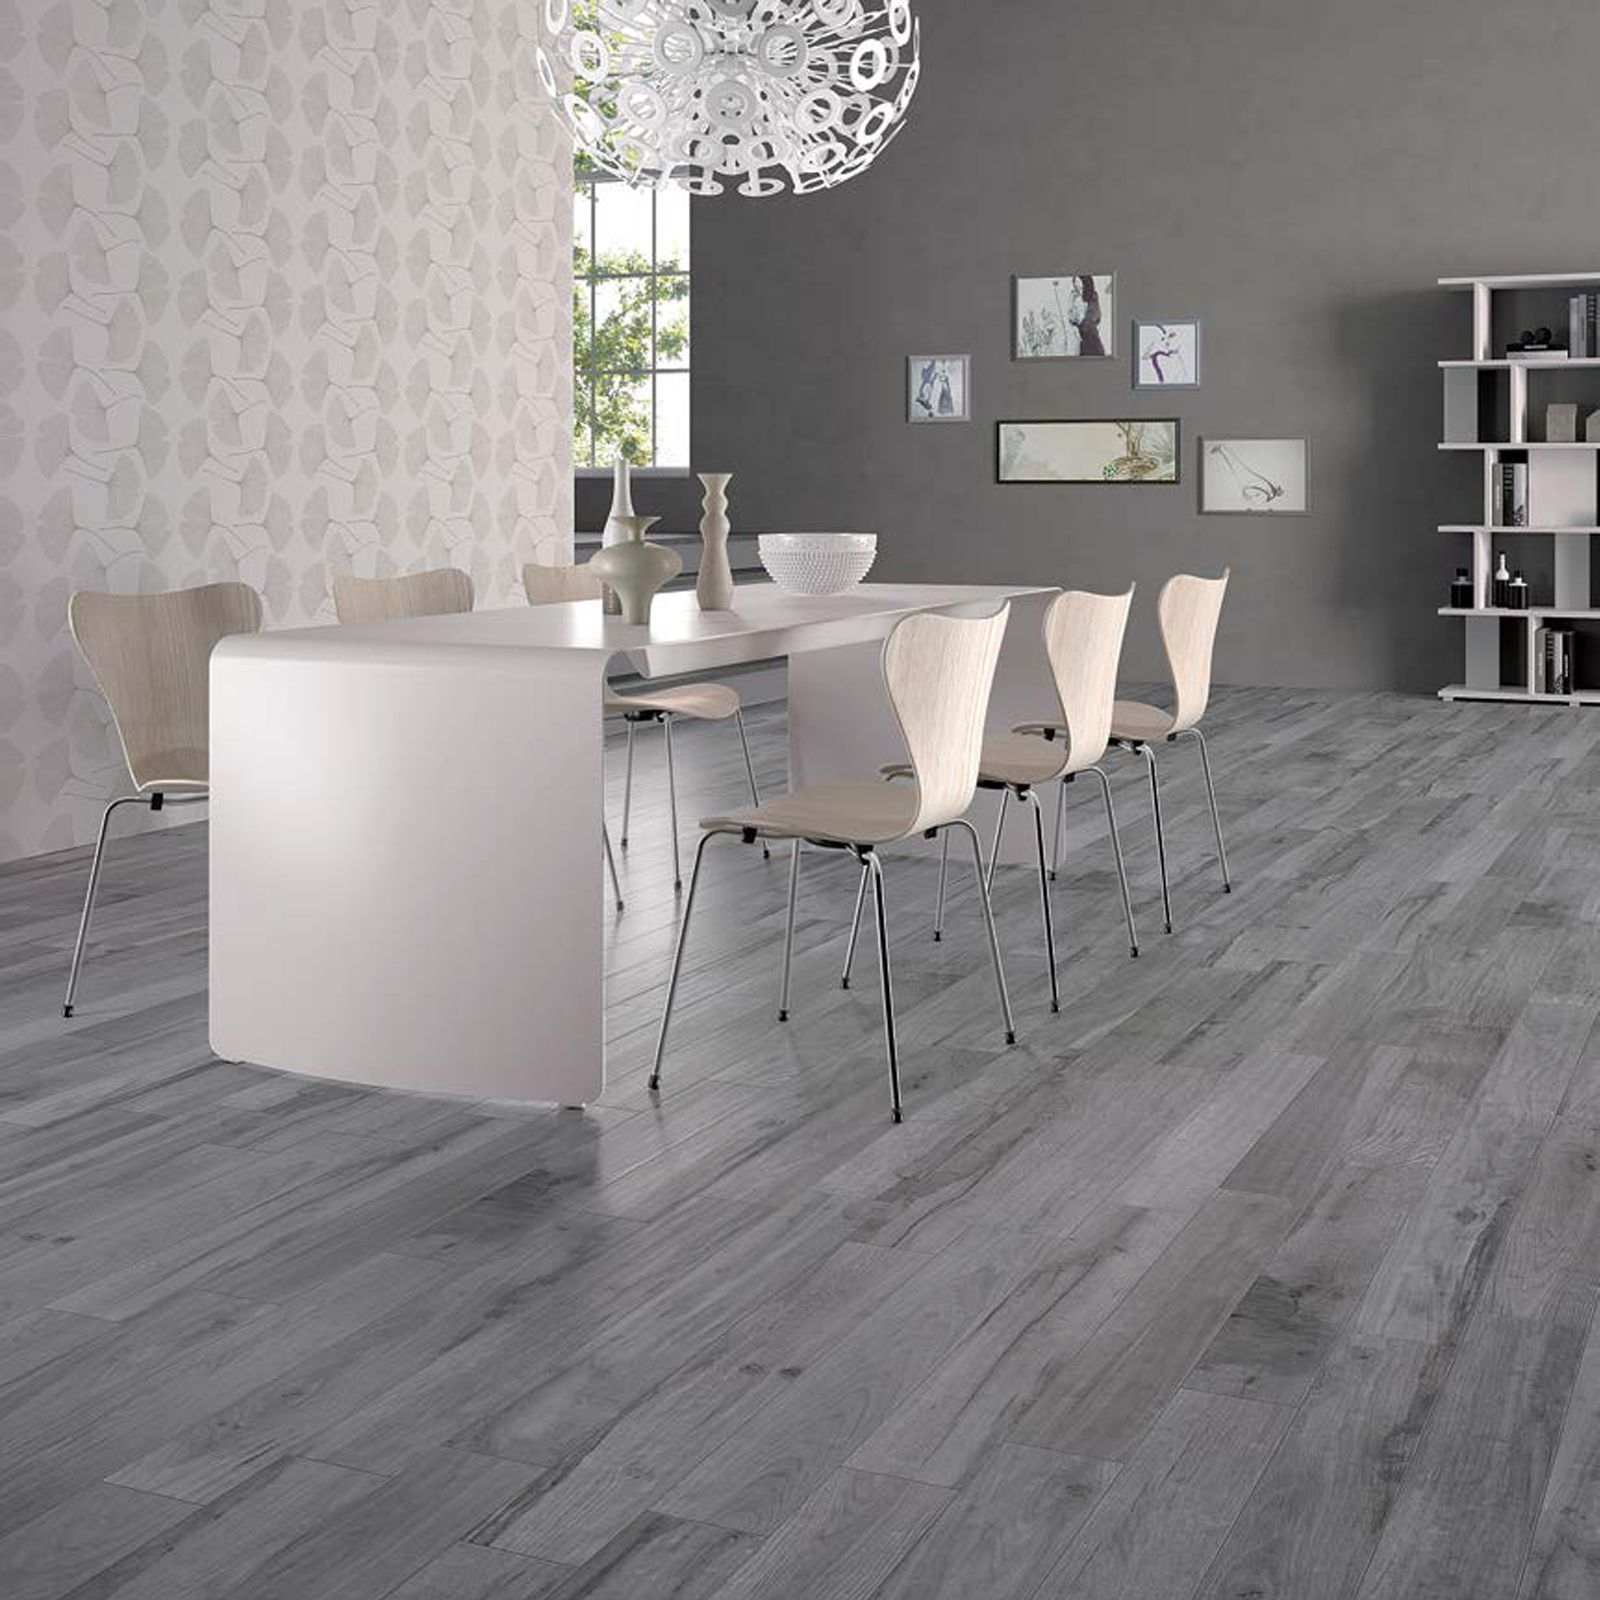 Modern Dining Area With Tiles From Soleras Collection By Abk Gray Wood Tile Flooring House Flooring Wood Tile Floors #wooden #tiles #living #room